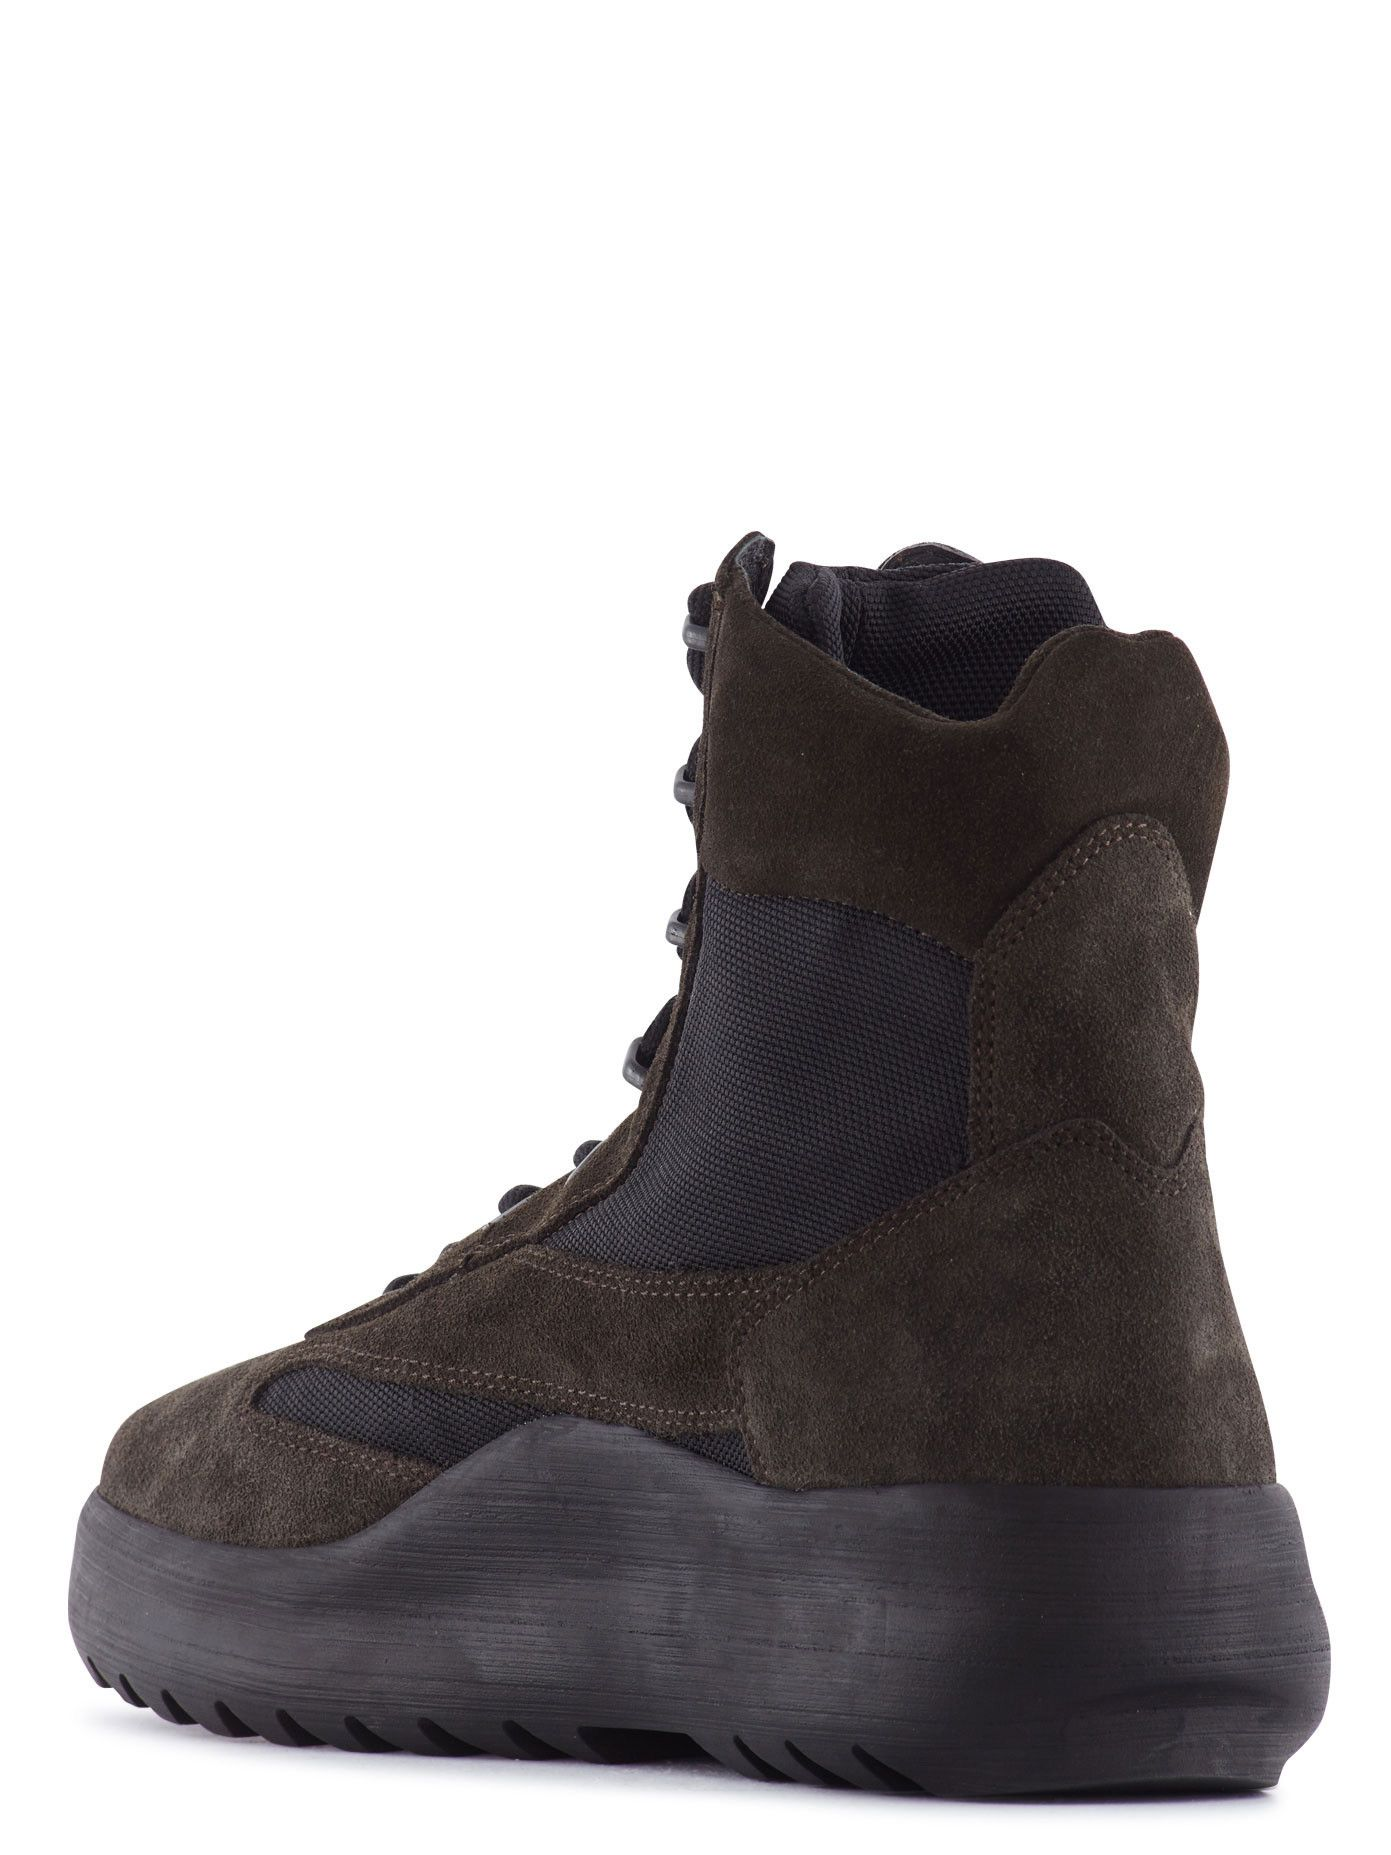 f19b5133725b2 Yeezy Season 5 - Suede And Mesh Military Boots